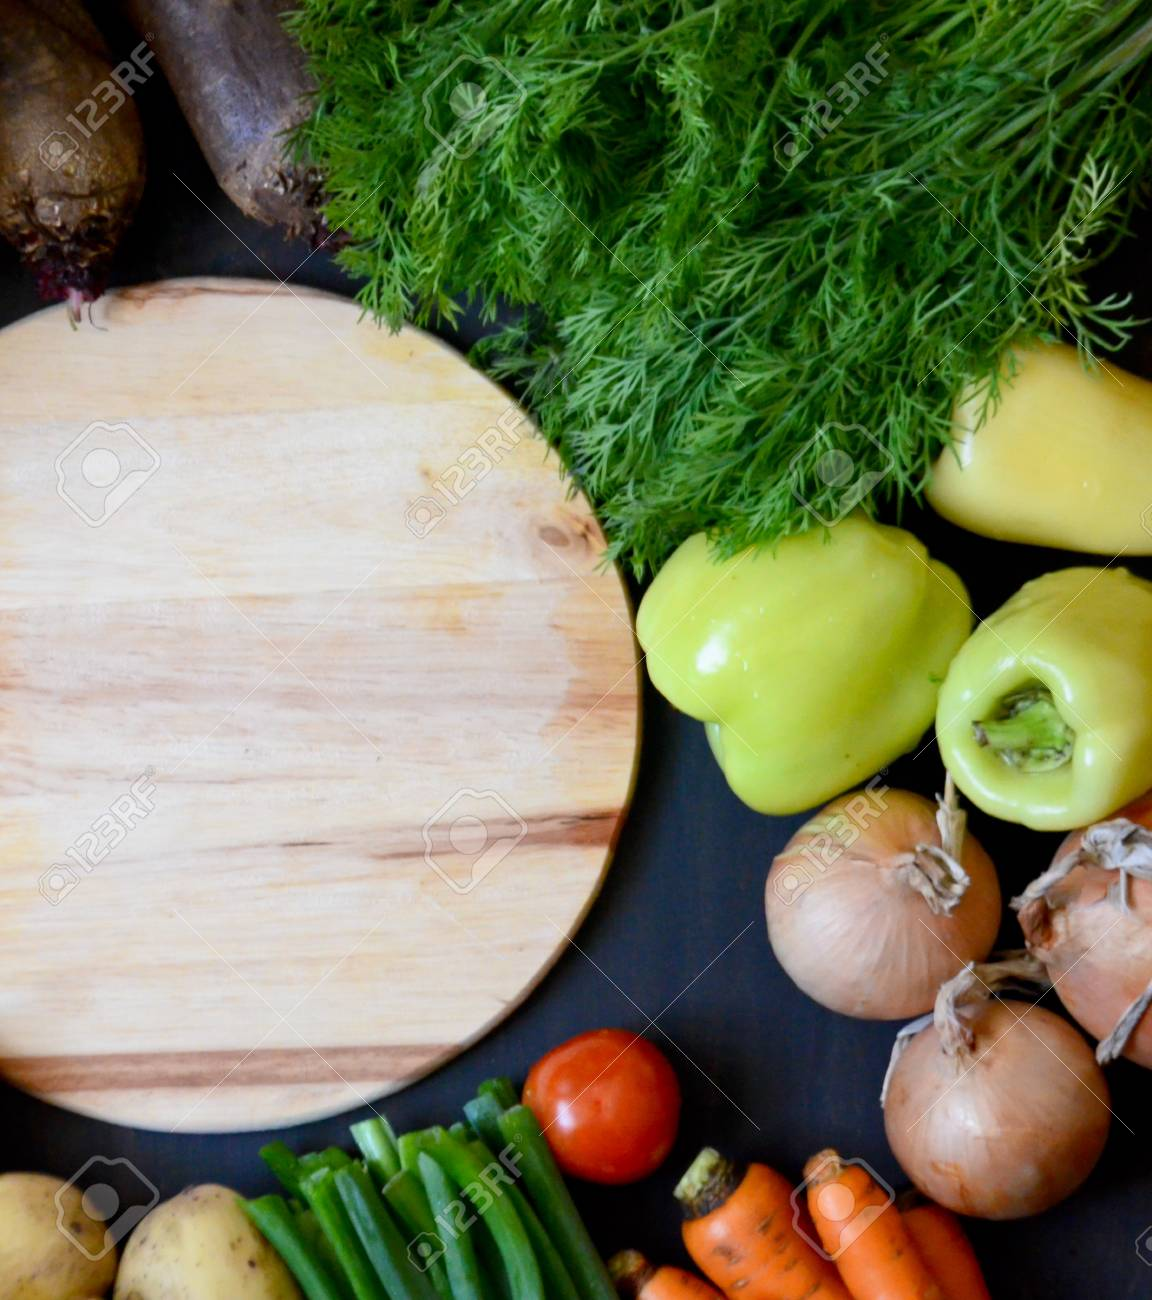 Wooden Round Cutting Board Next To The Vegetables On Black Background Stock Photo Picture And Royalty Free Image Image 86497769